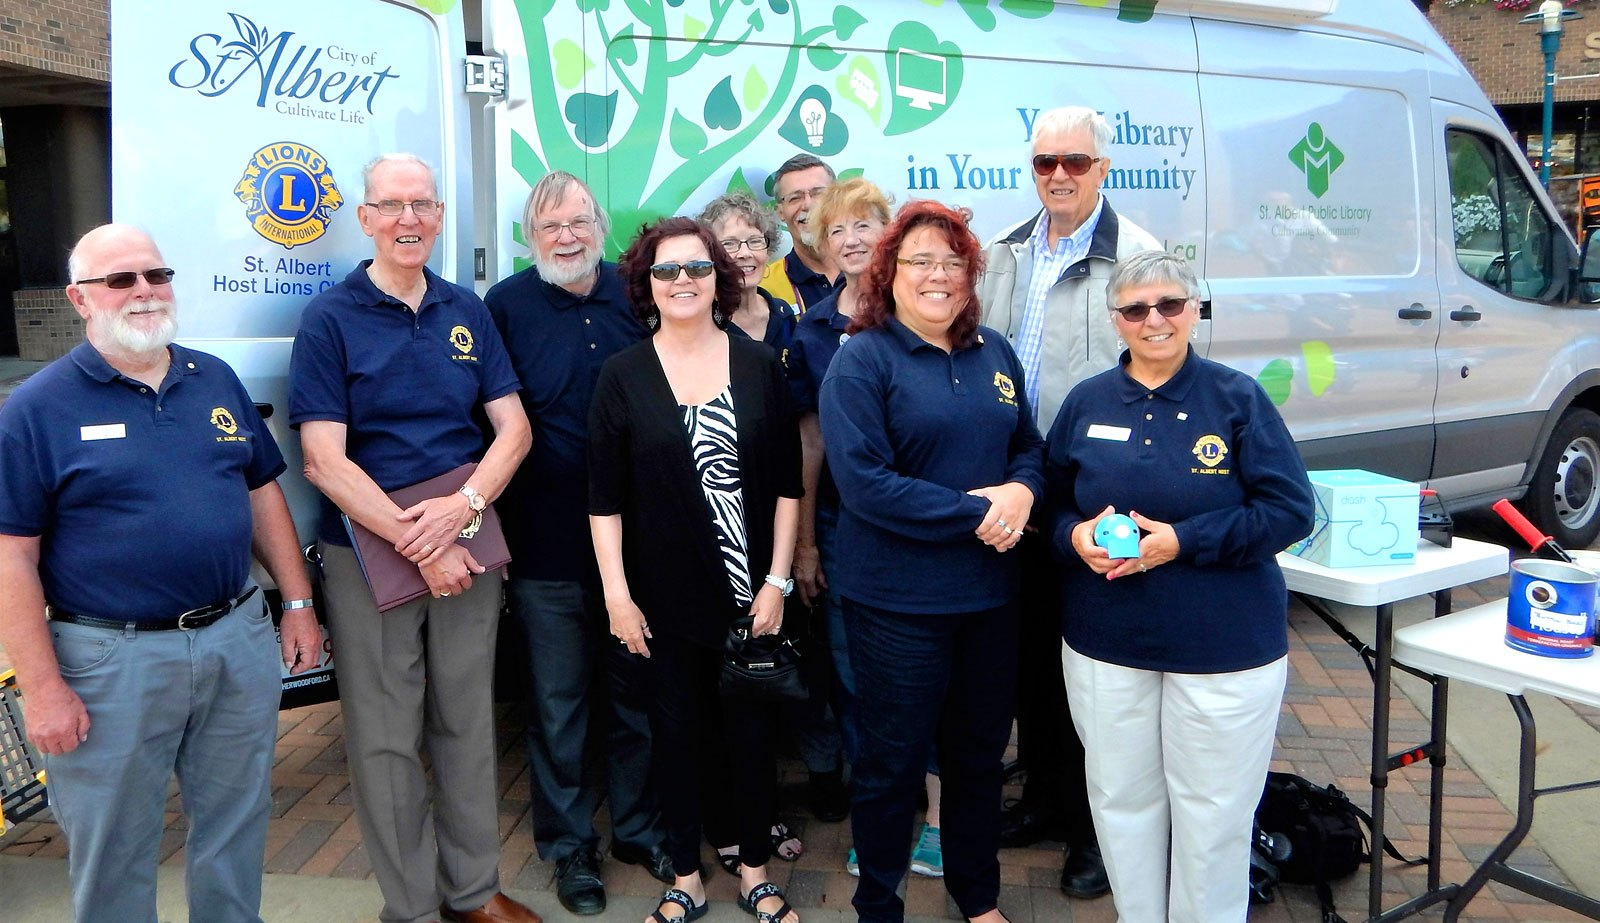 St Albert Host Lions equip a library resource vehicle, for their Centennial Project.